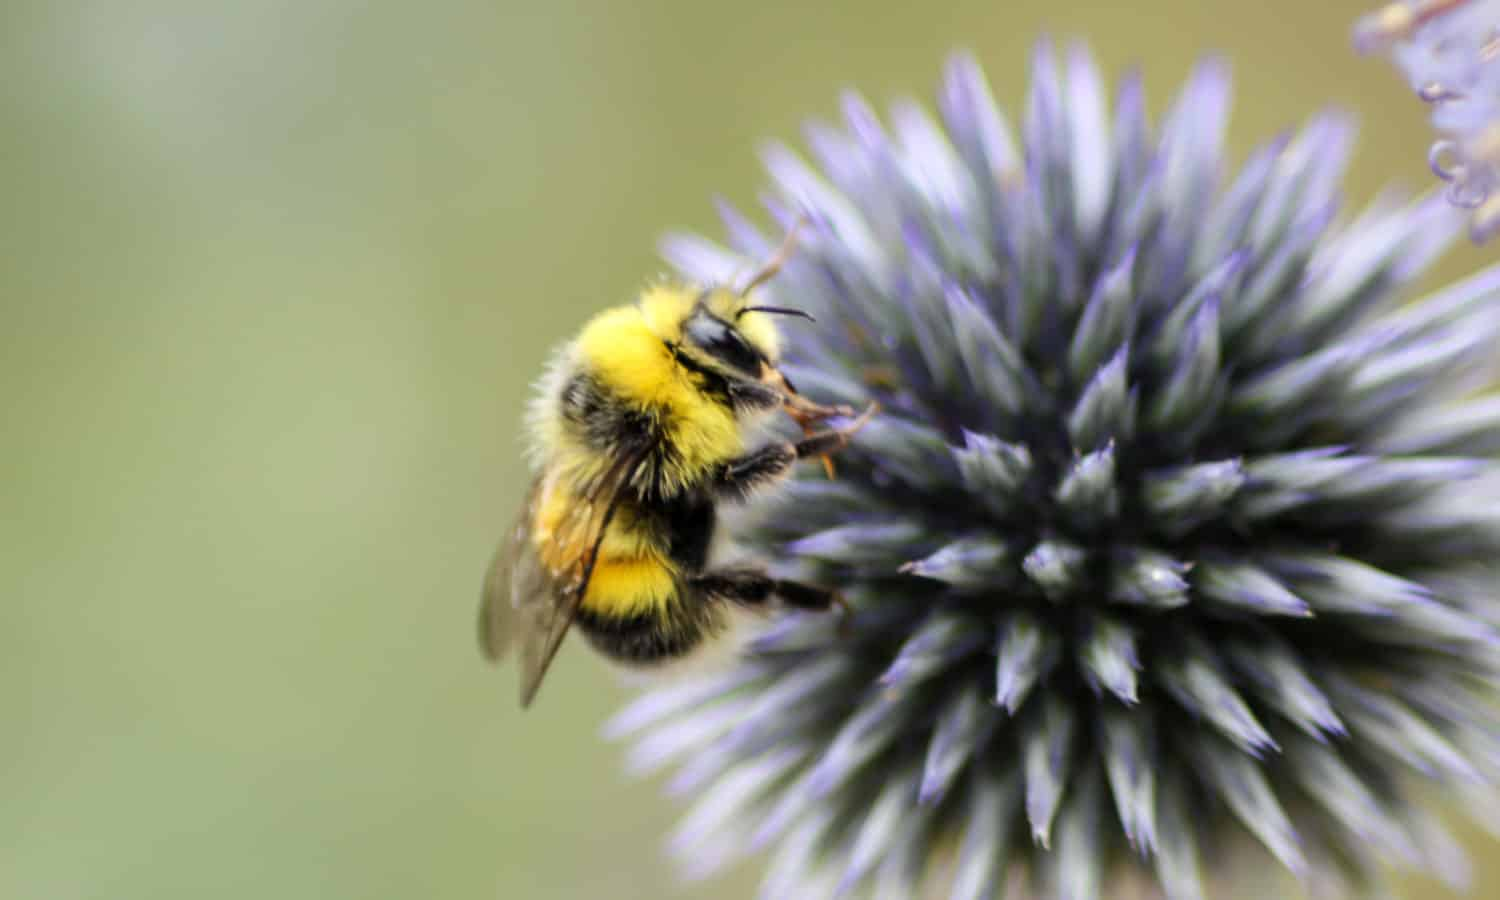 Bees play a vital role in the food system as pollinators for a variety of crops—from strawberries to almonds. In the last 20 years, bee populations have become increasingly threatened by climate change and industrial agriculture.